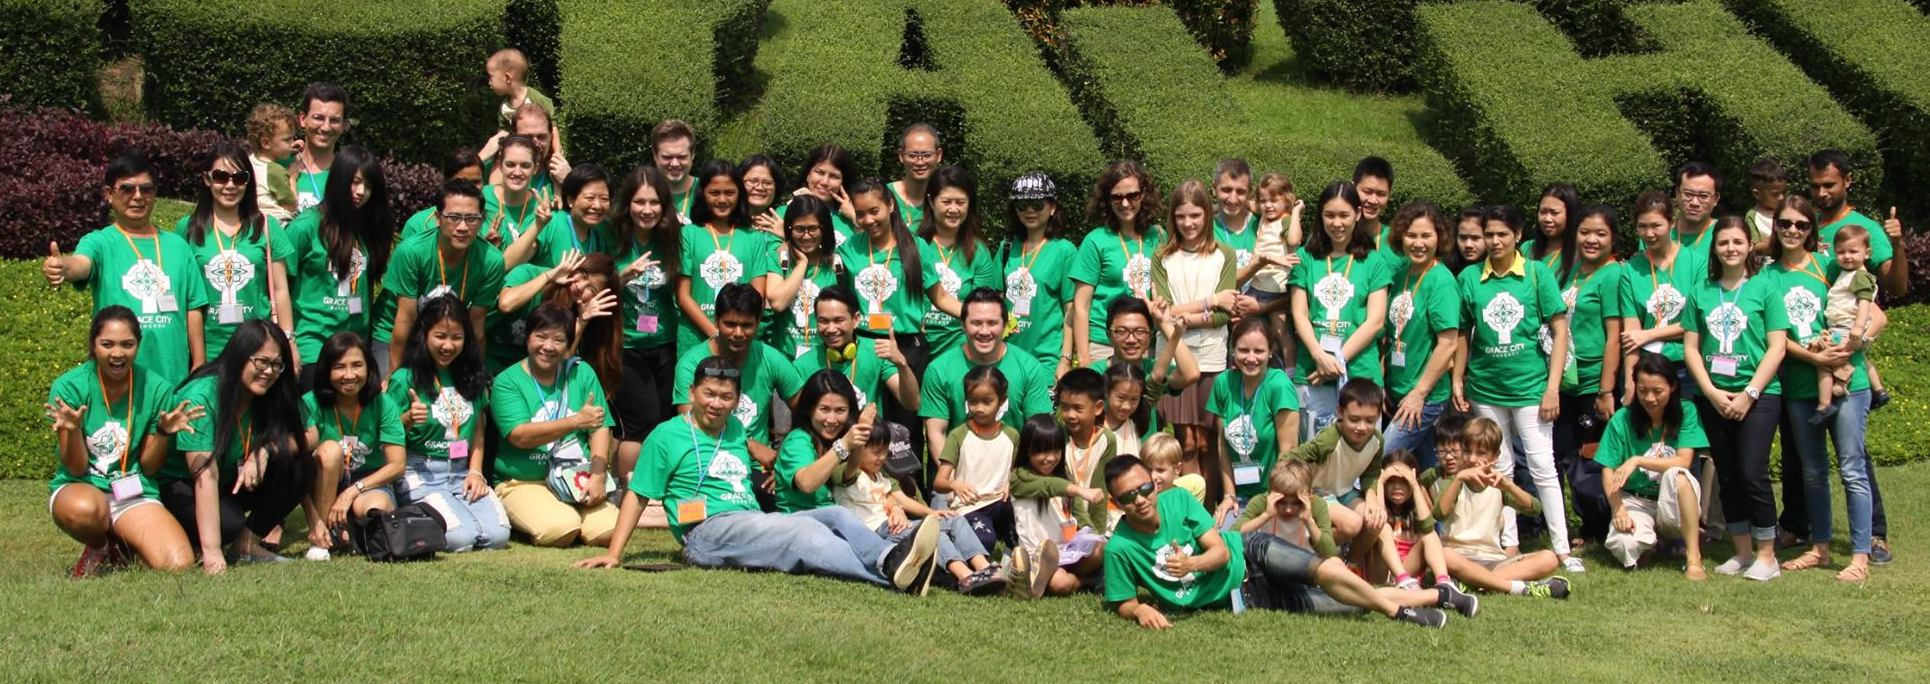 Grace City Bangkok church camp, October 2015